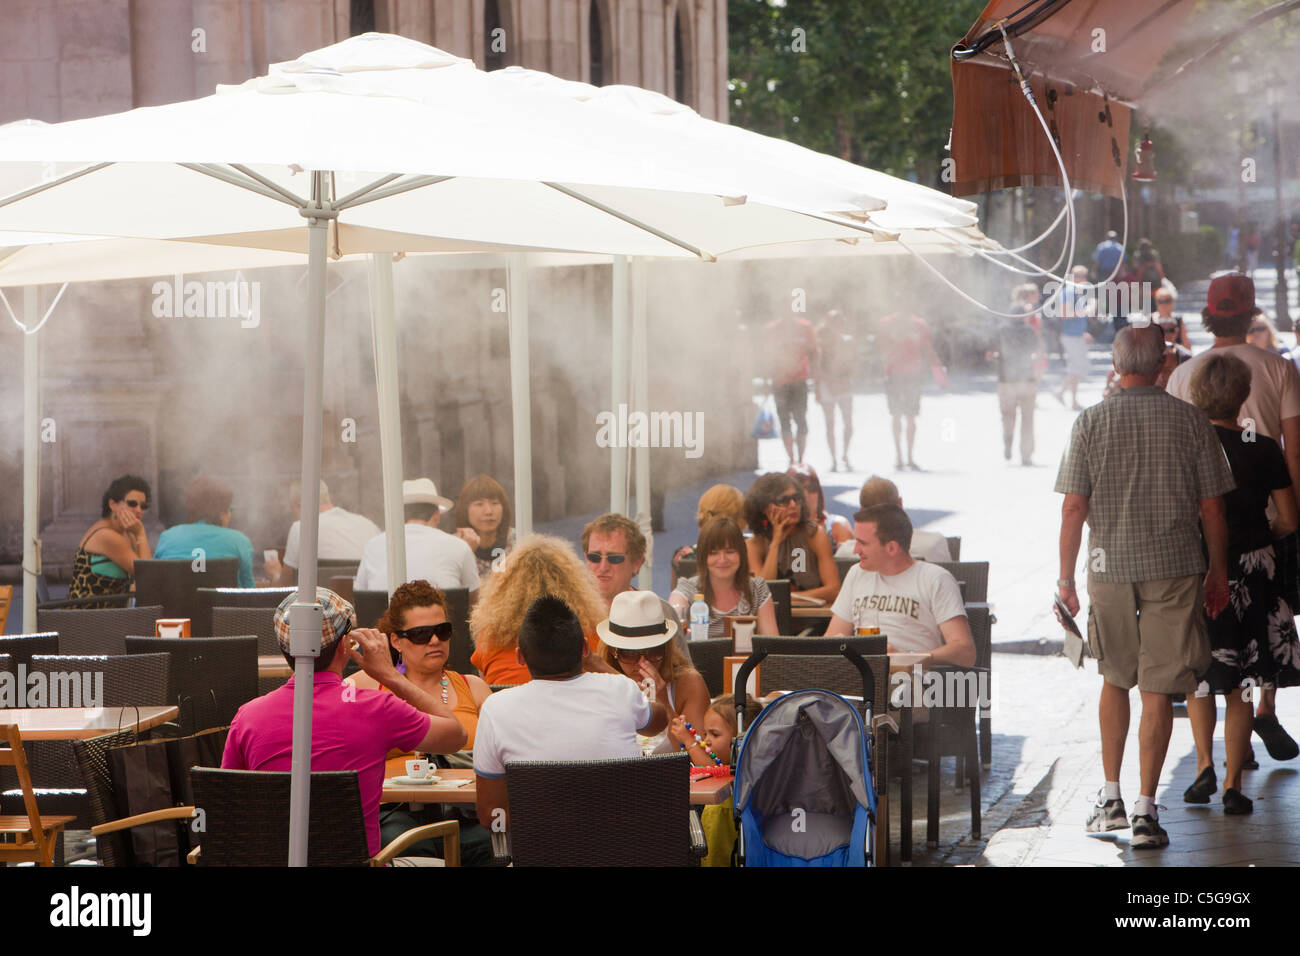 A cafe using cooling mist spray during a heat wave in Seville, Spain. - Stock Image